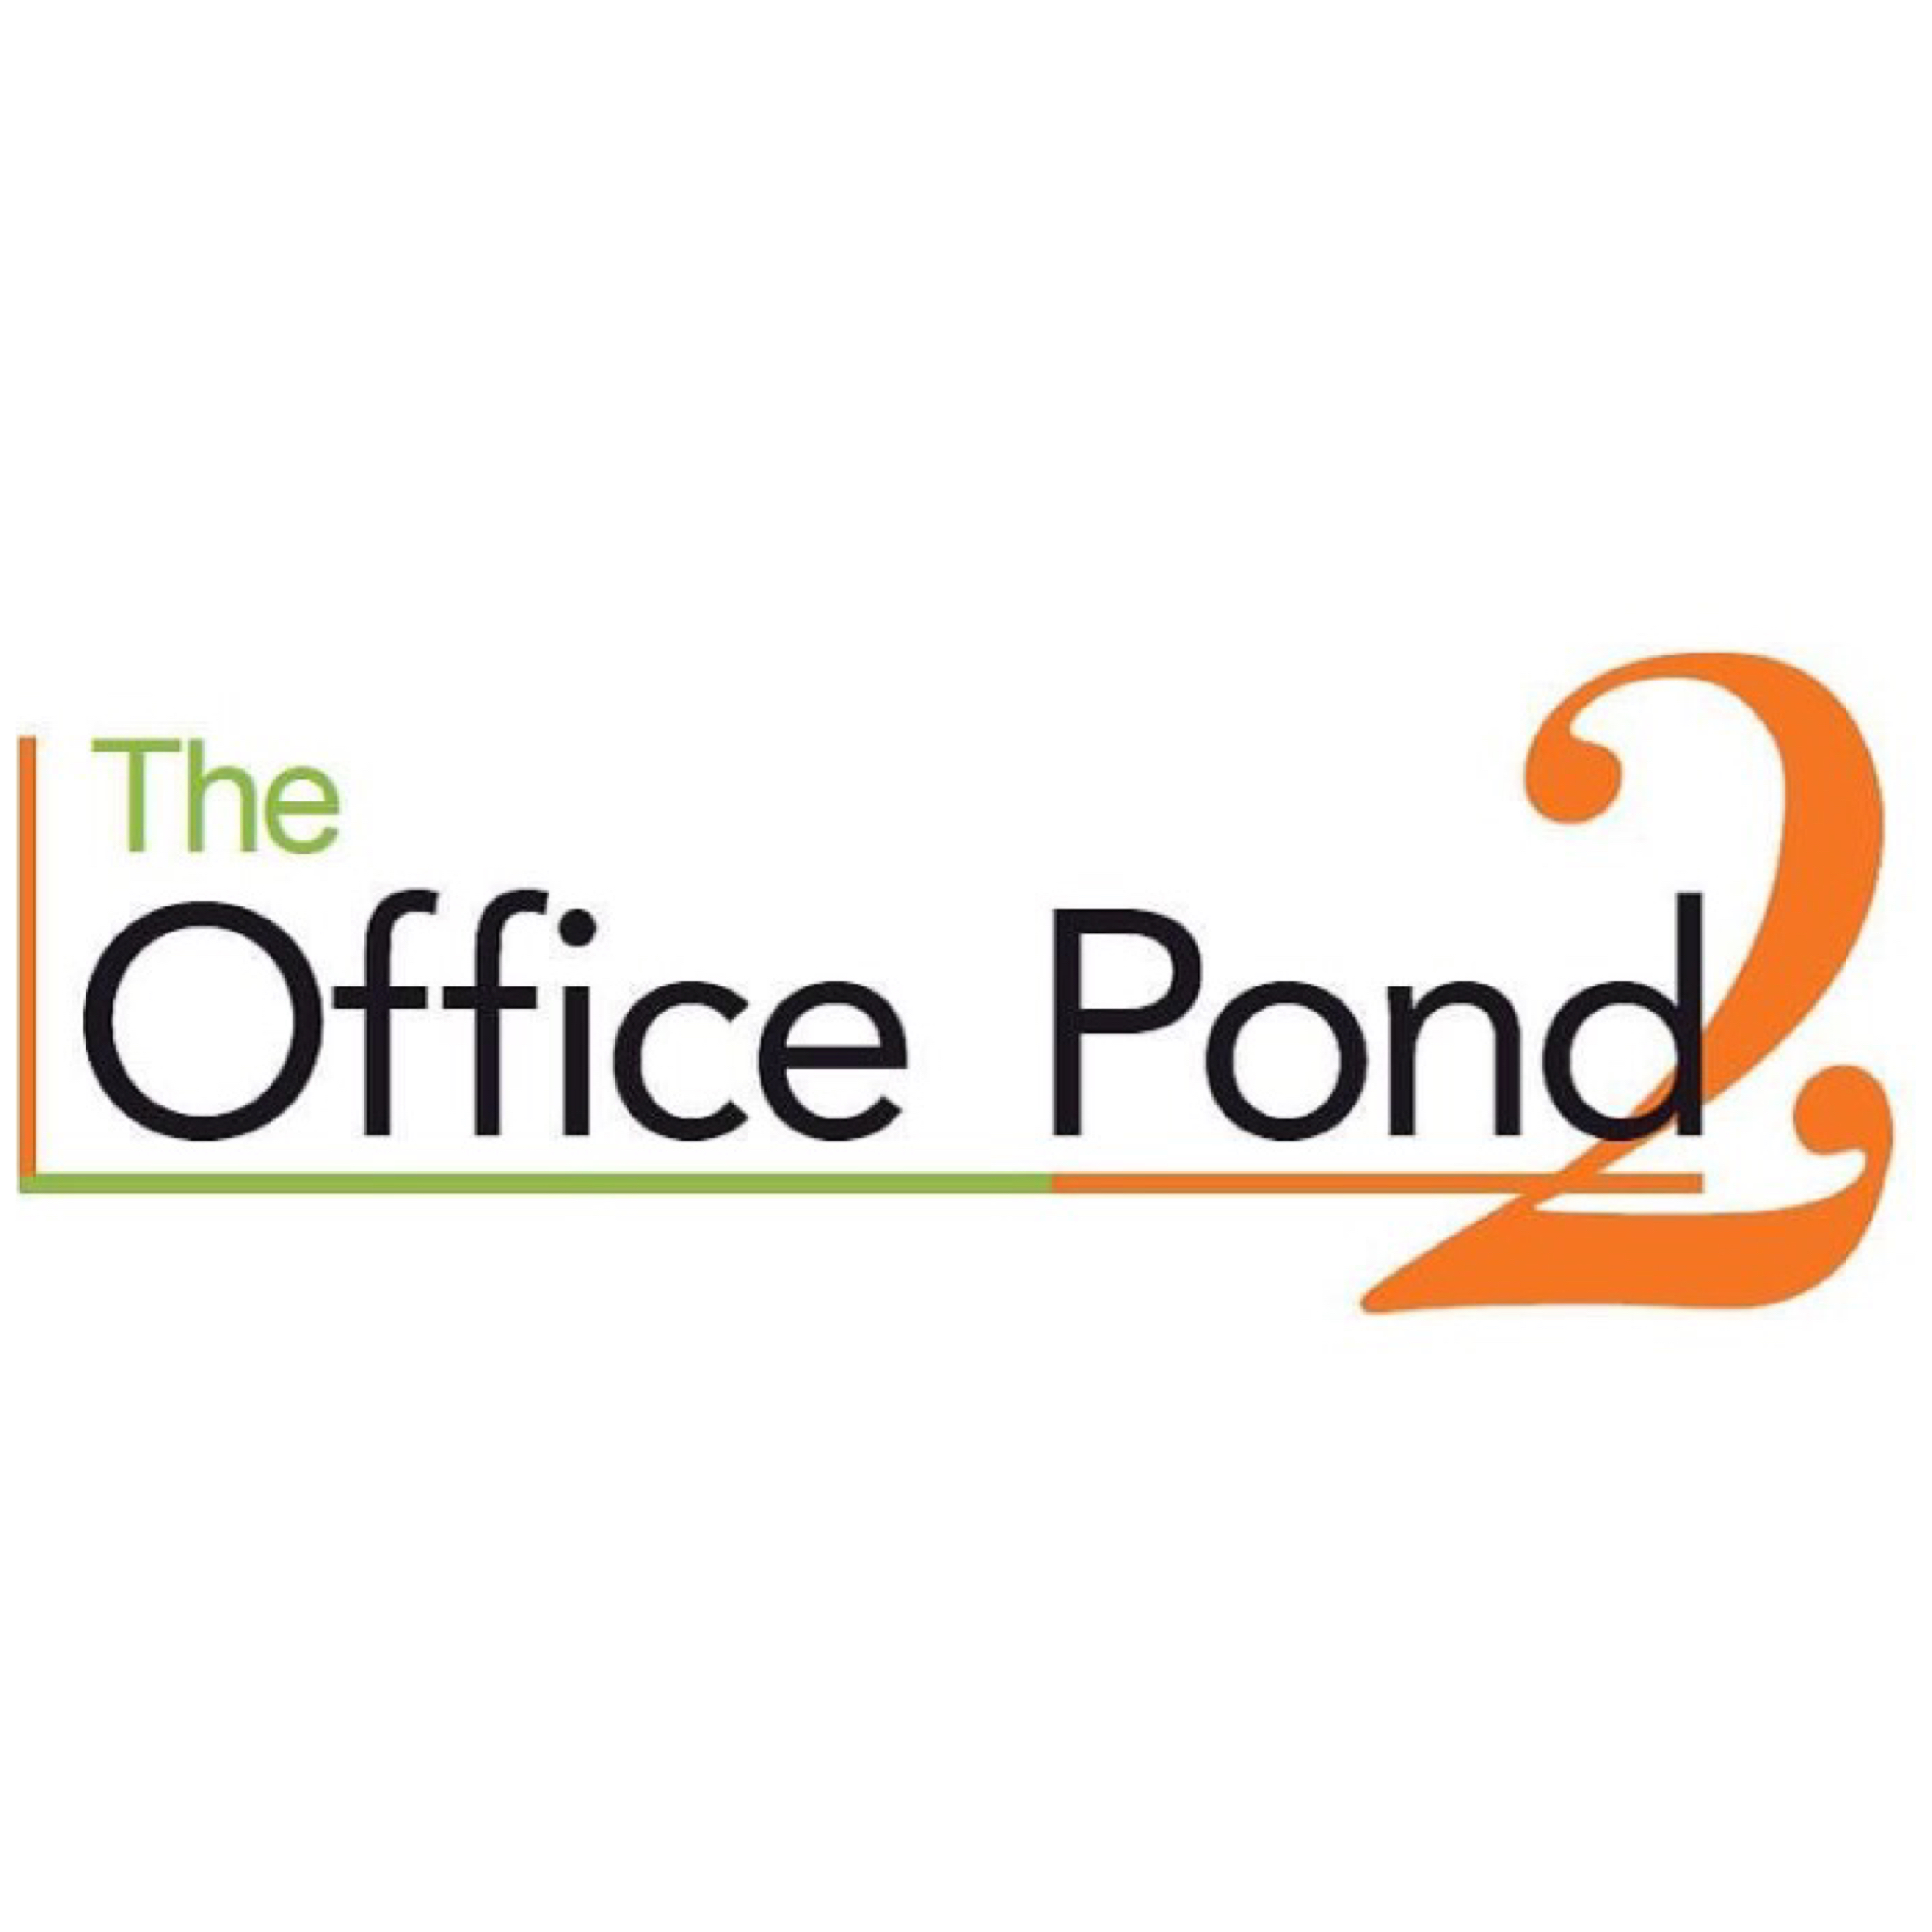 The Office Pond - Now Leasing 2 -3 Person affordable private office suites in the heart of the CBD